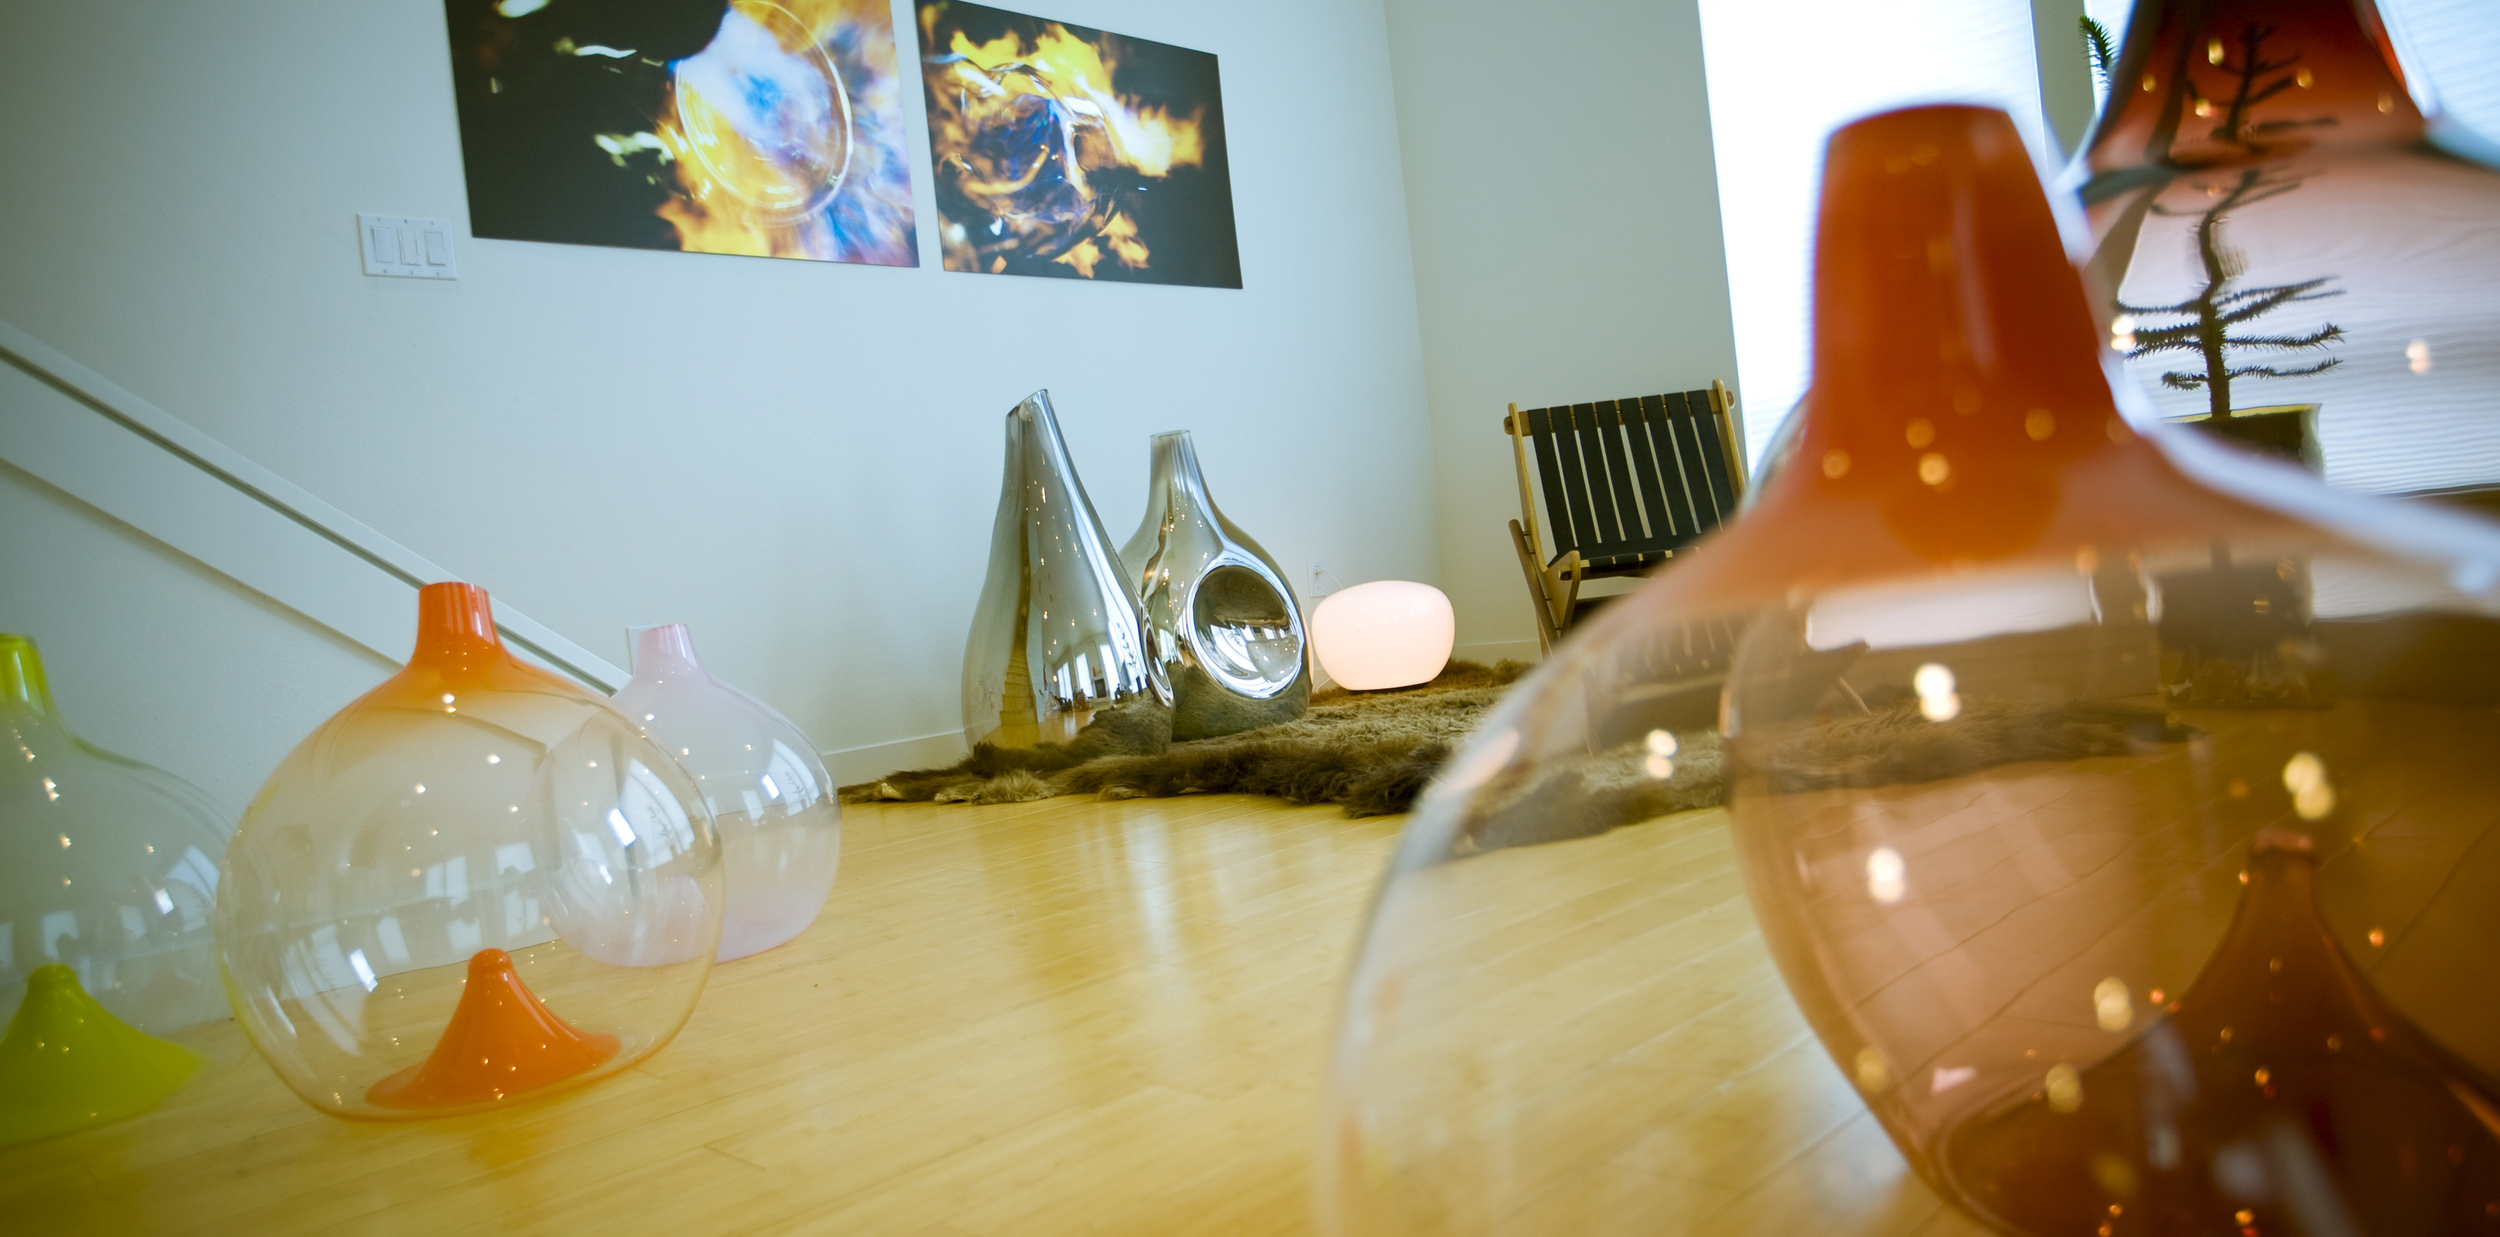 residence.project.waterdrops.silvervases.jpg